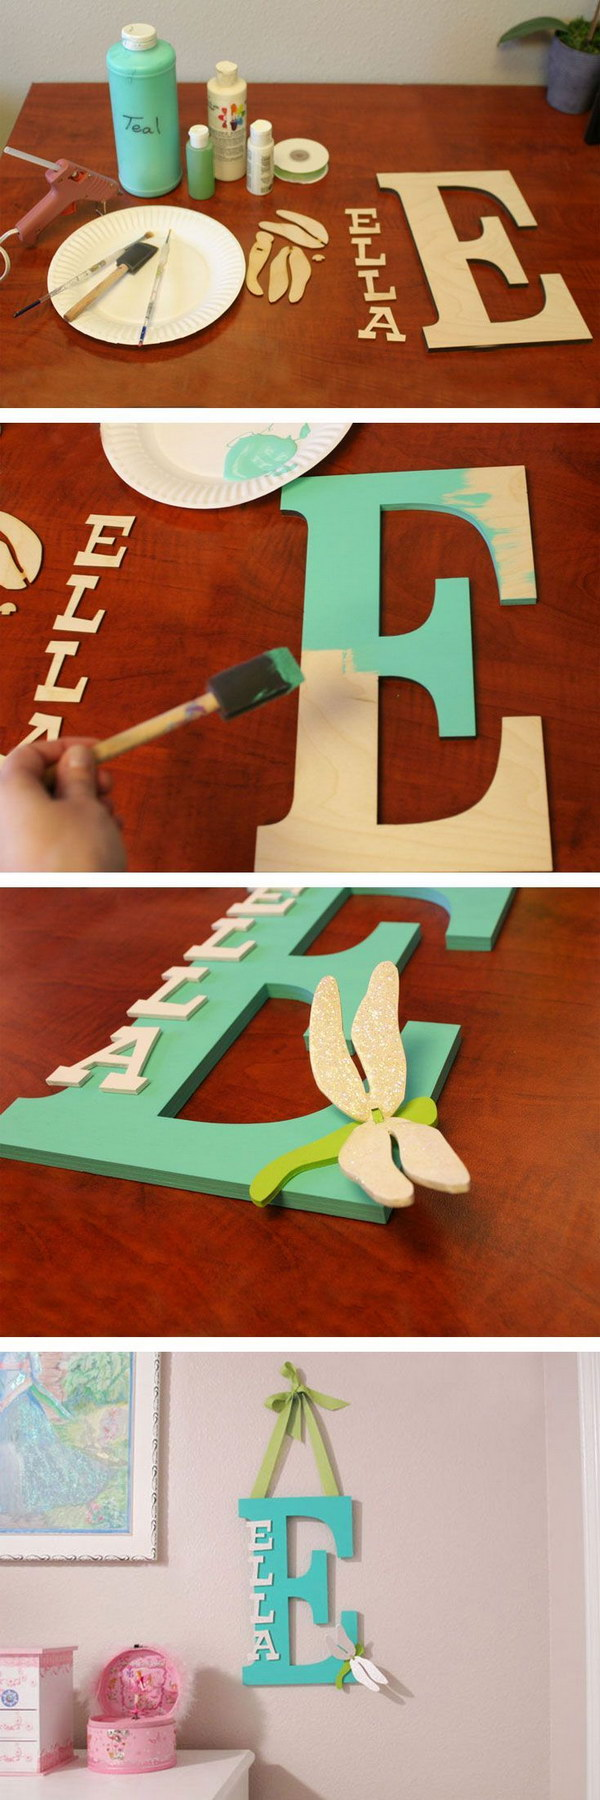 Painted Wooden Letter for a Kids' Room